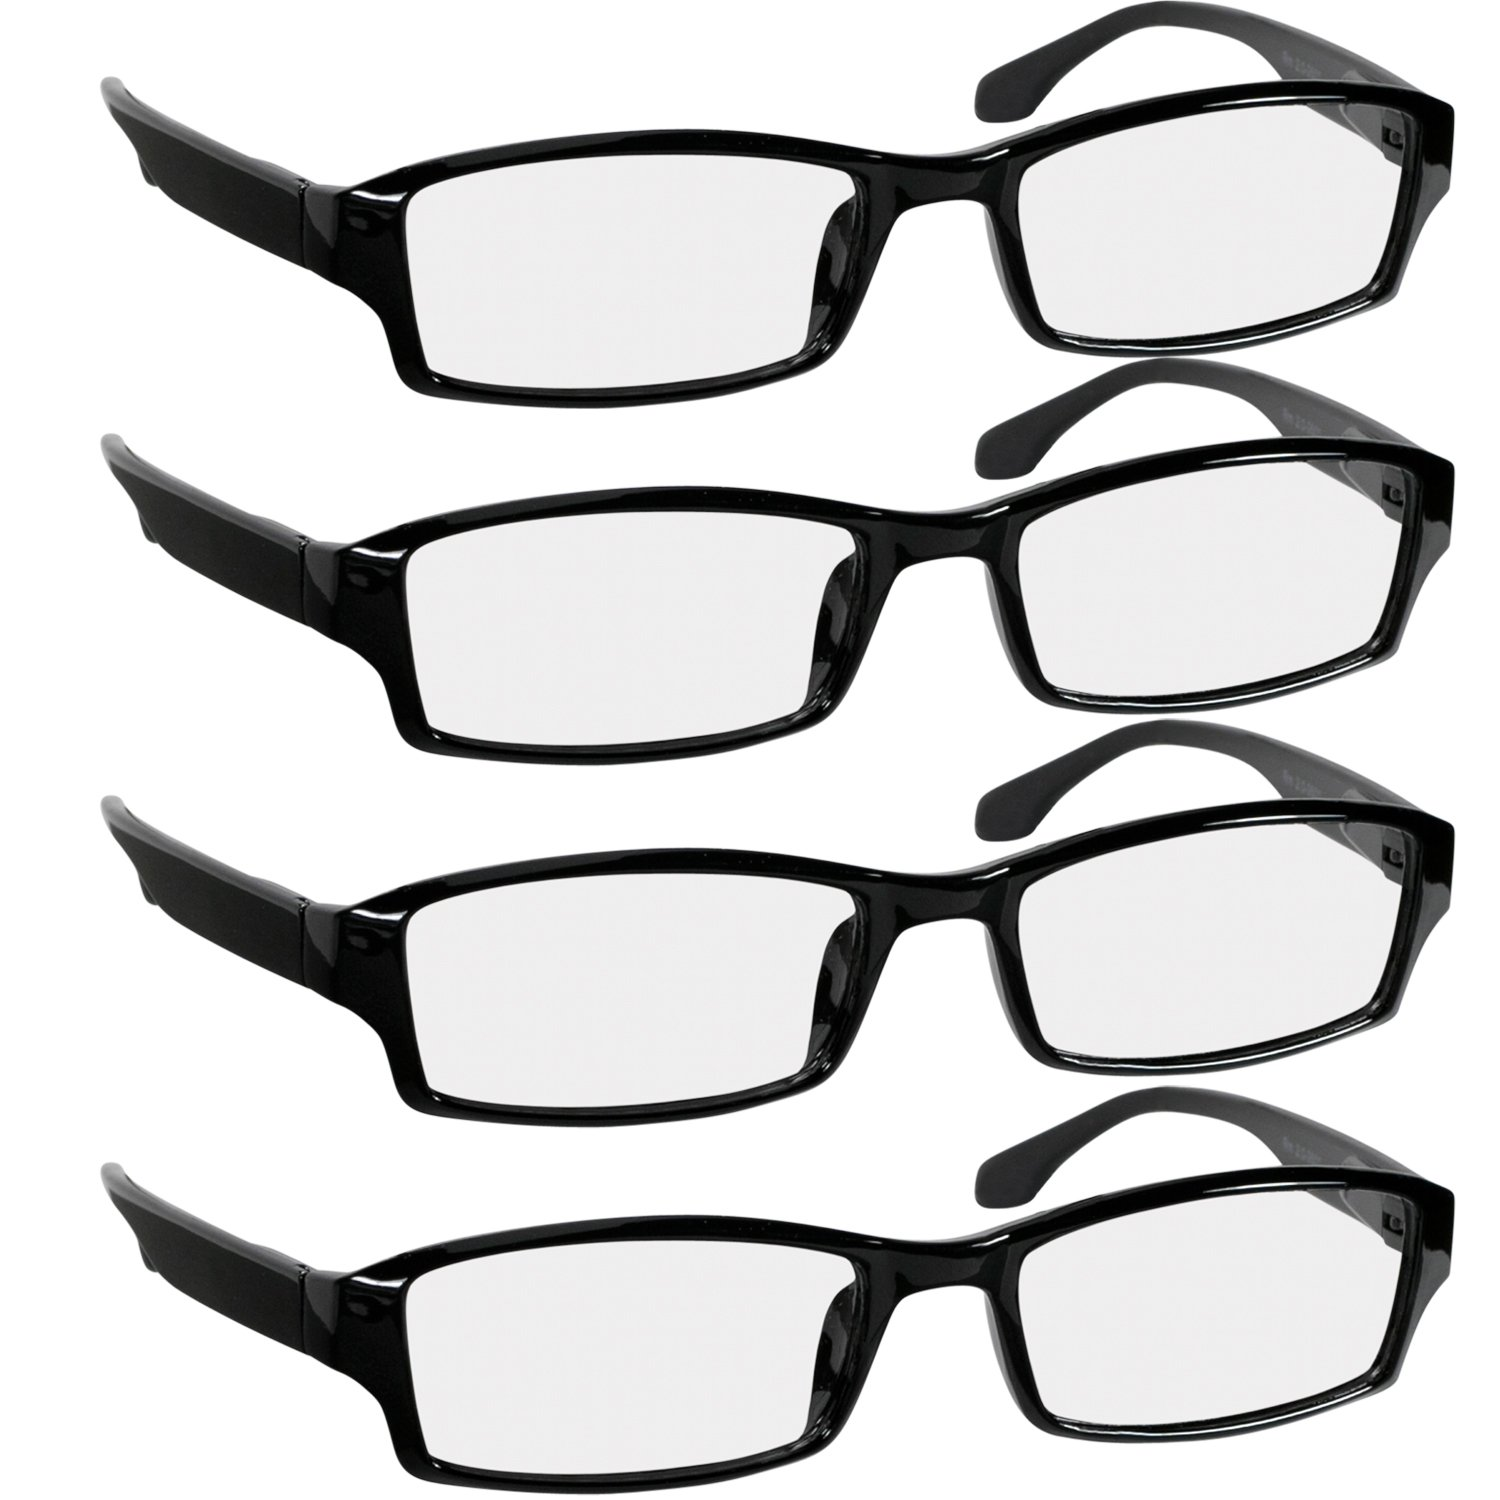 2cbc80baaf1e6 Best Rated in Reading Glasses   Helpful Customer Reviews - Amazon.com